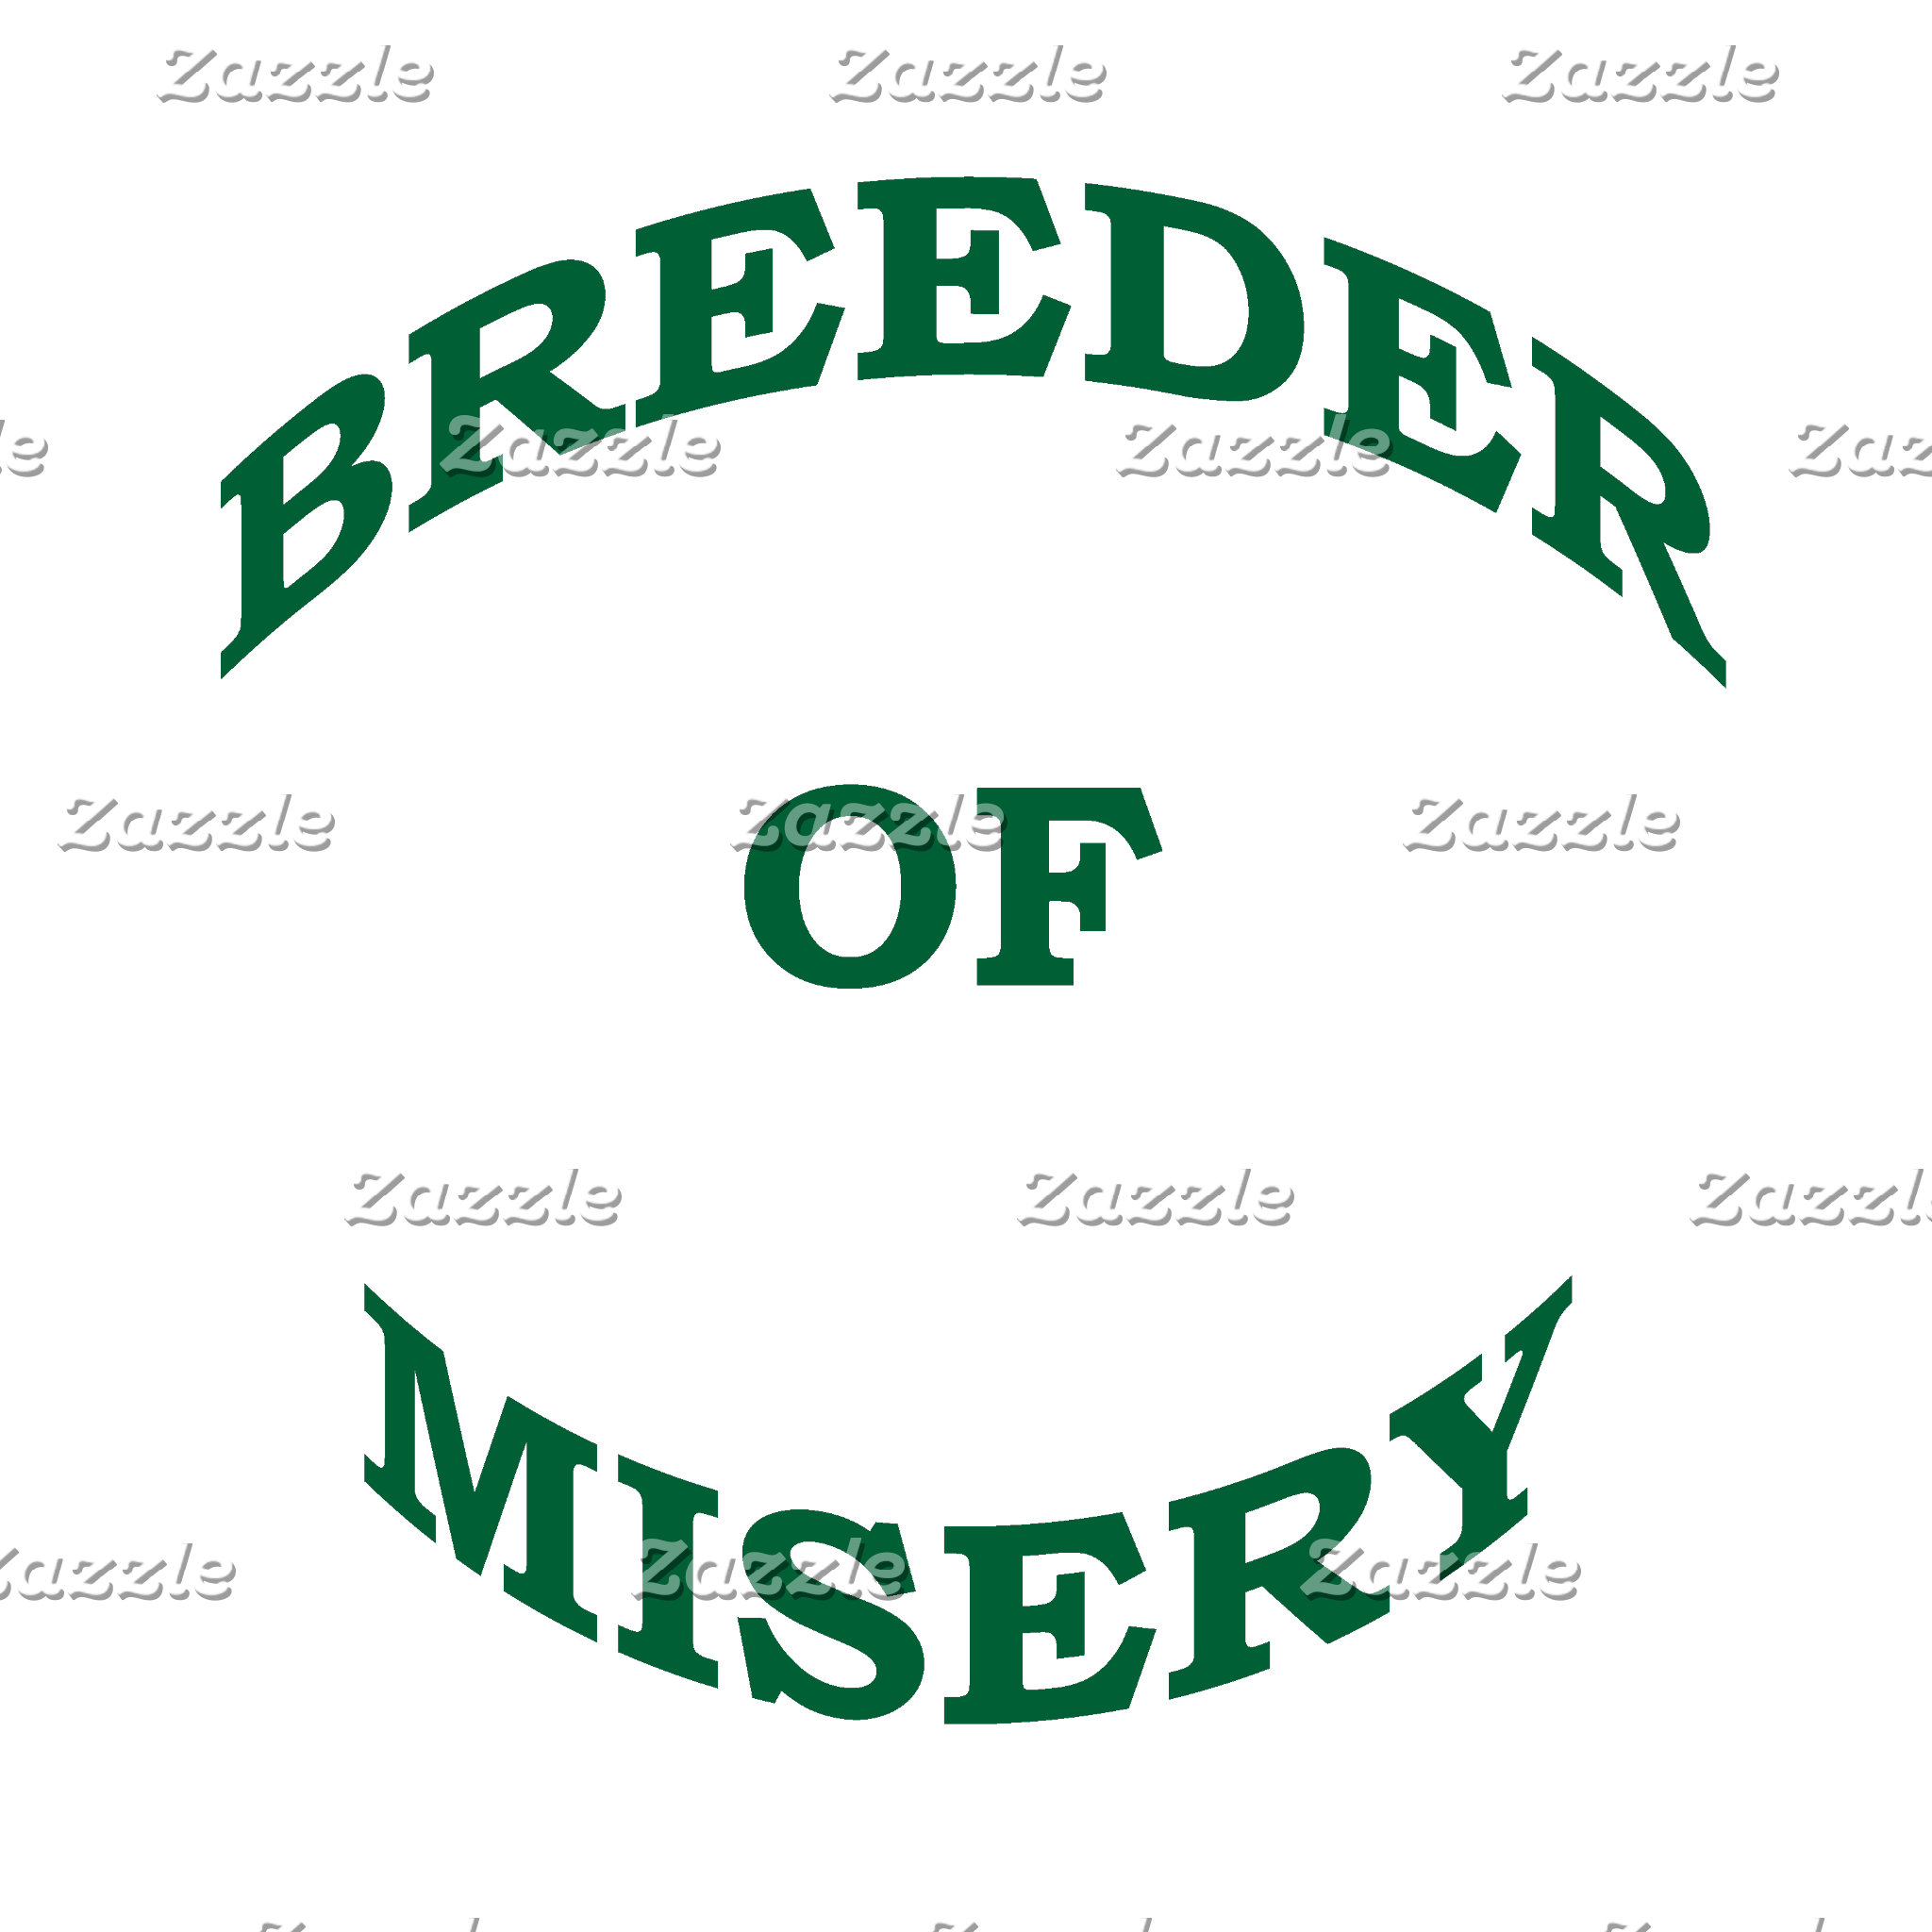 Breeder of Misery (Variety of Colors)